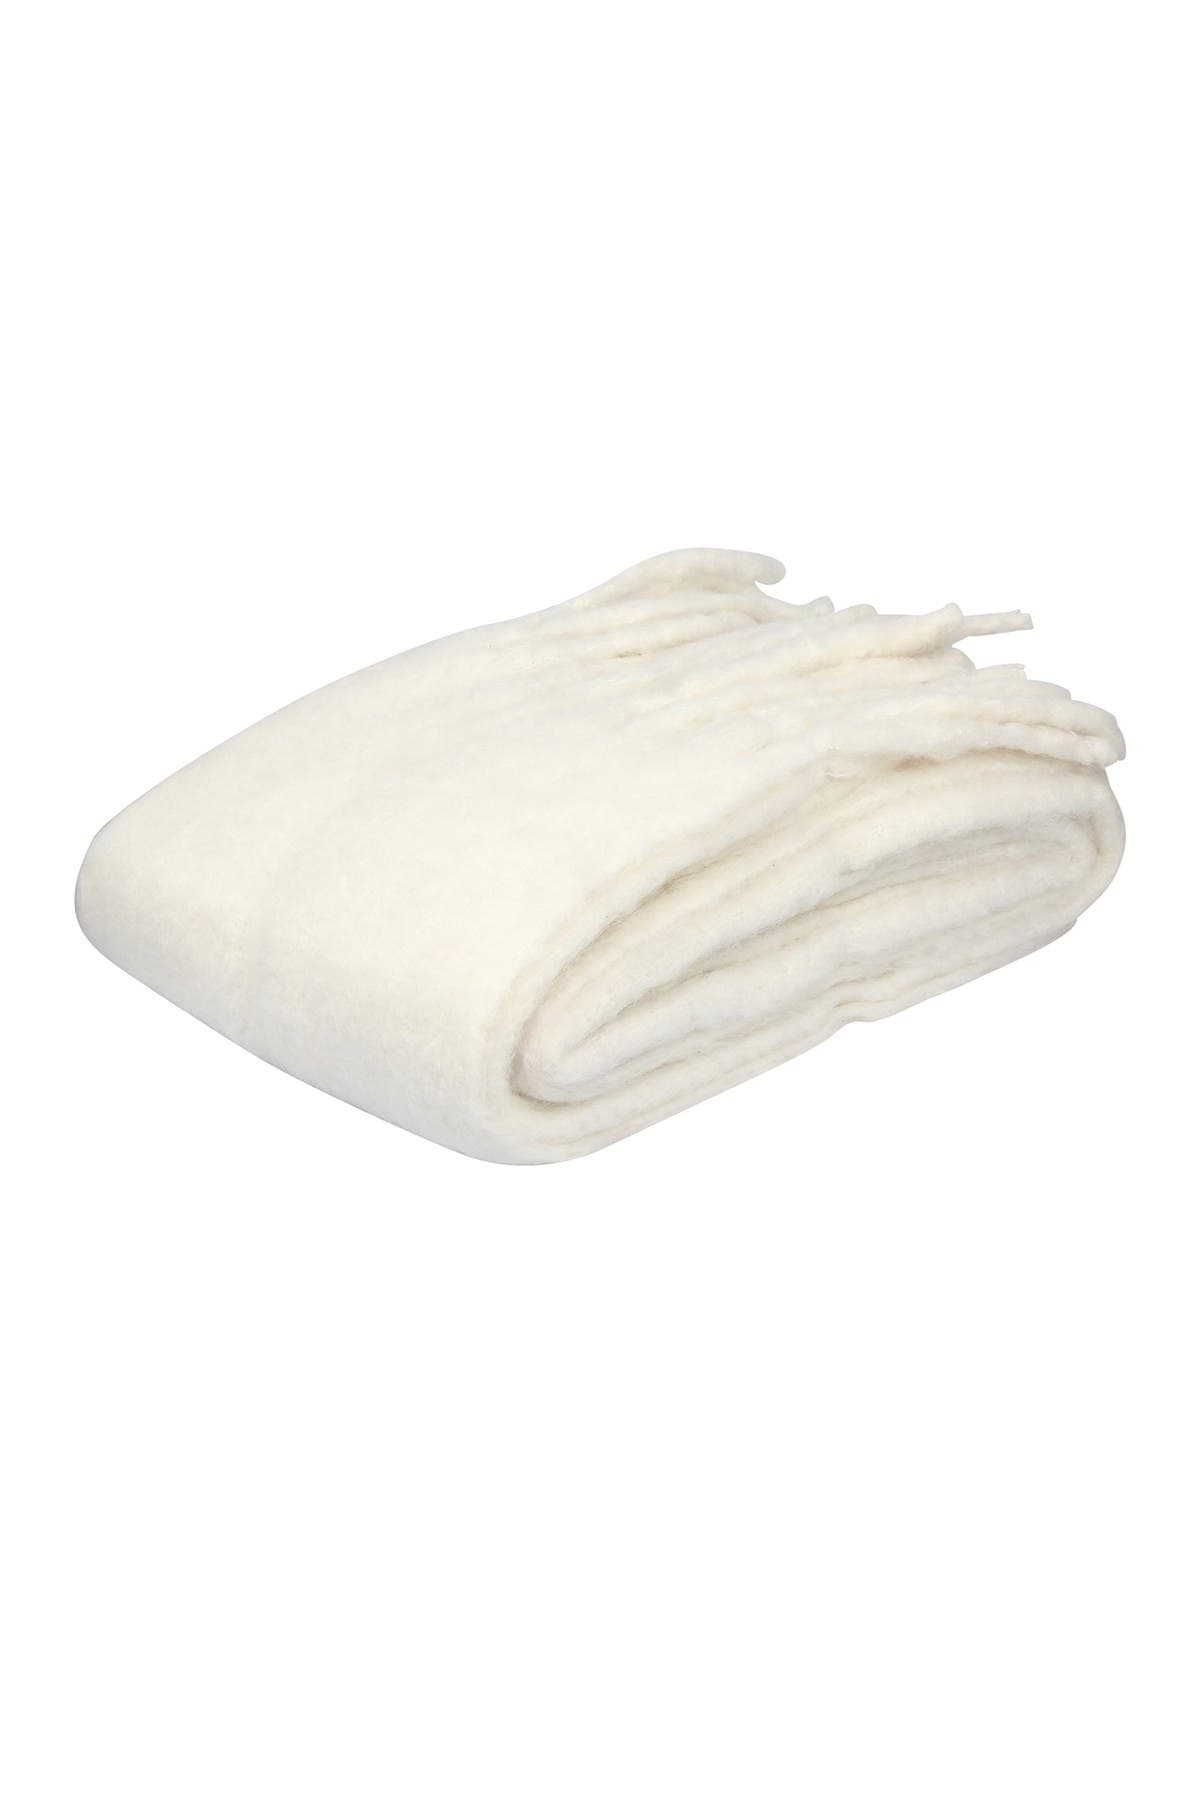 Image of EIGHTMOOD Fringe Trim Throw - Off White